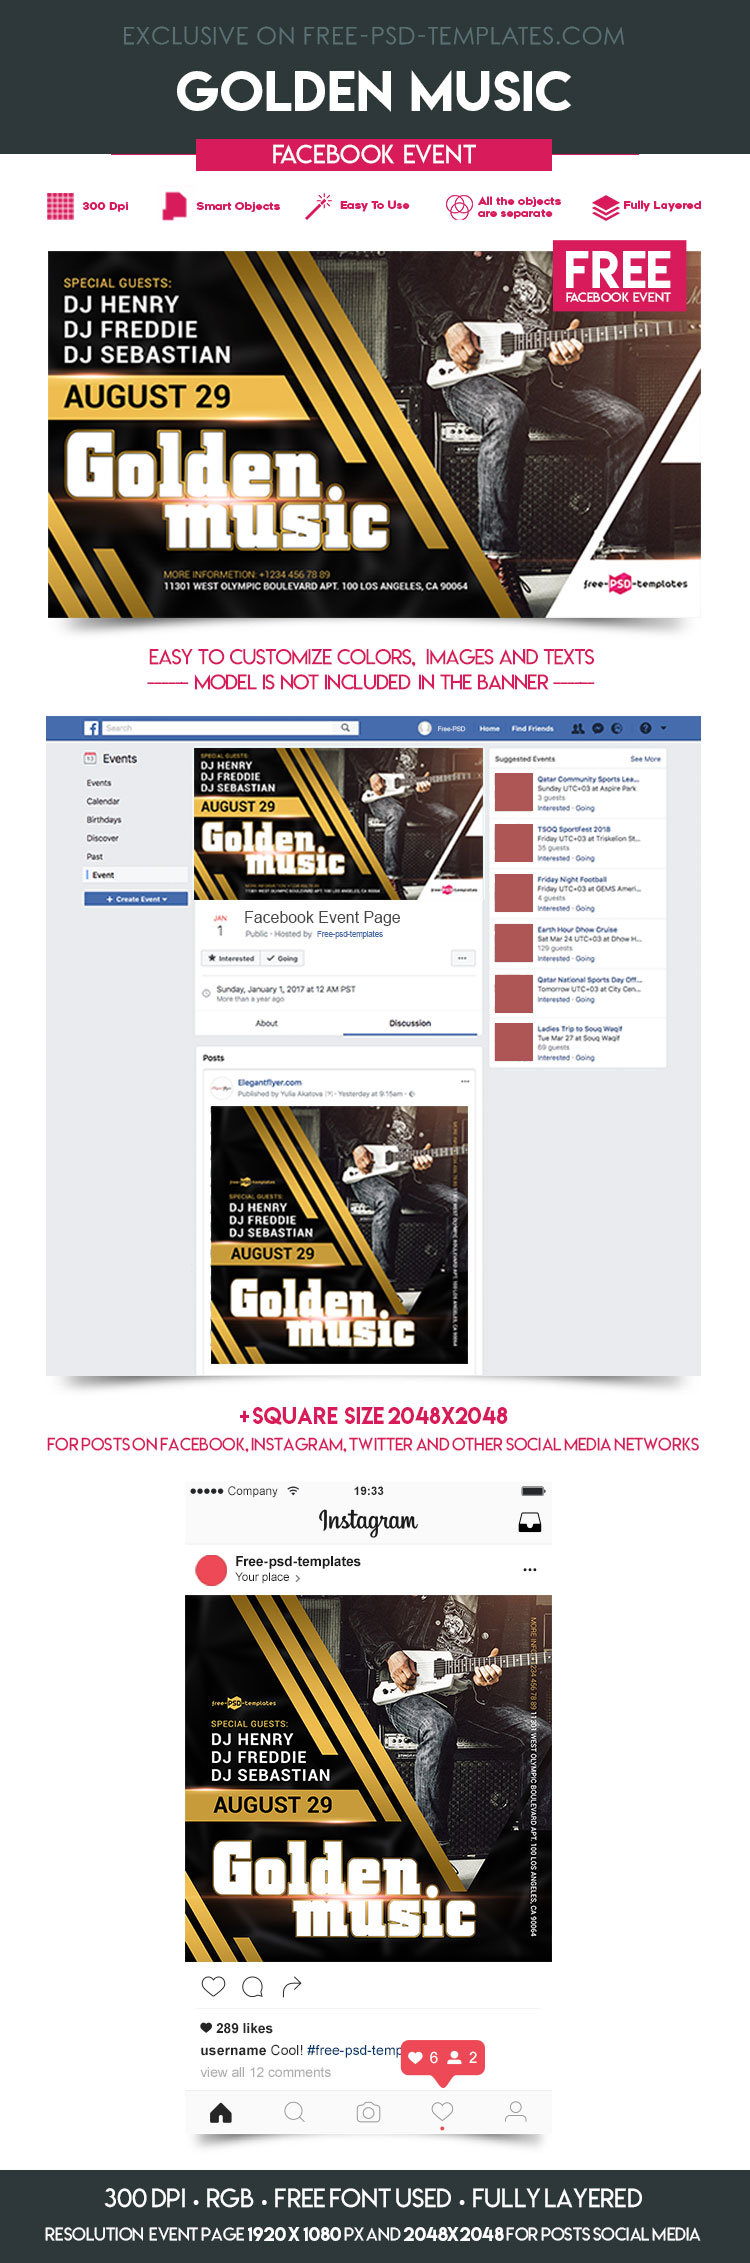 Free Golden Music Facebook Event Page | Free PSD Templates